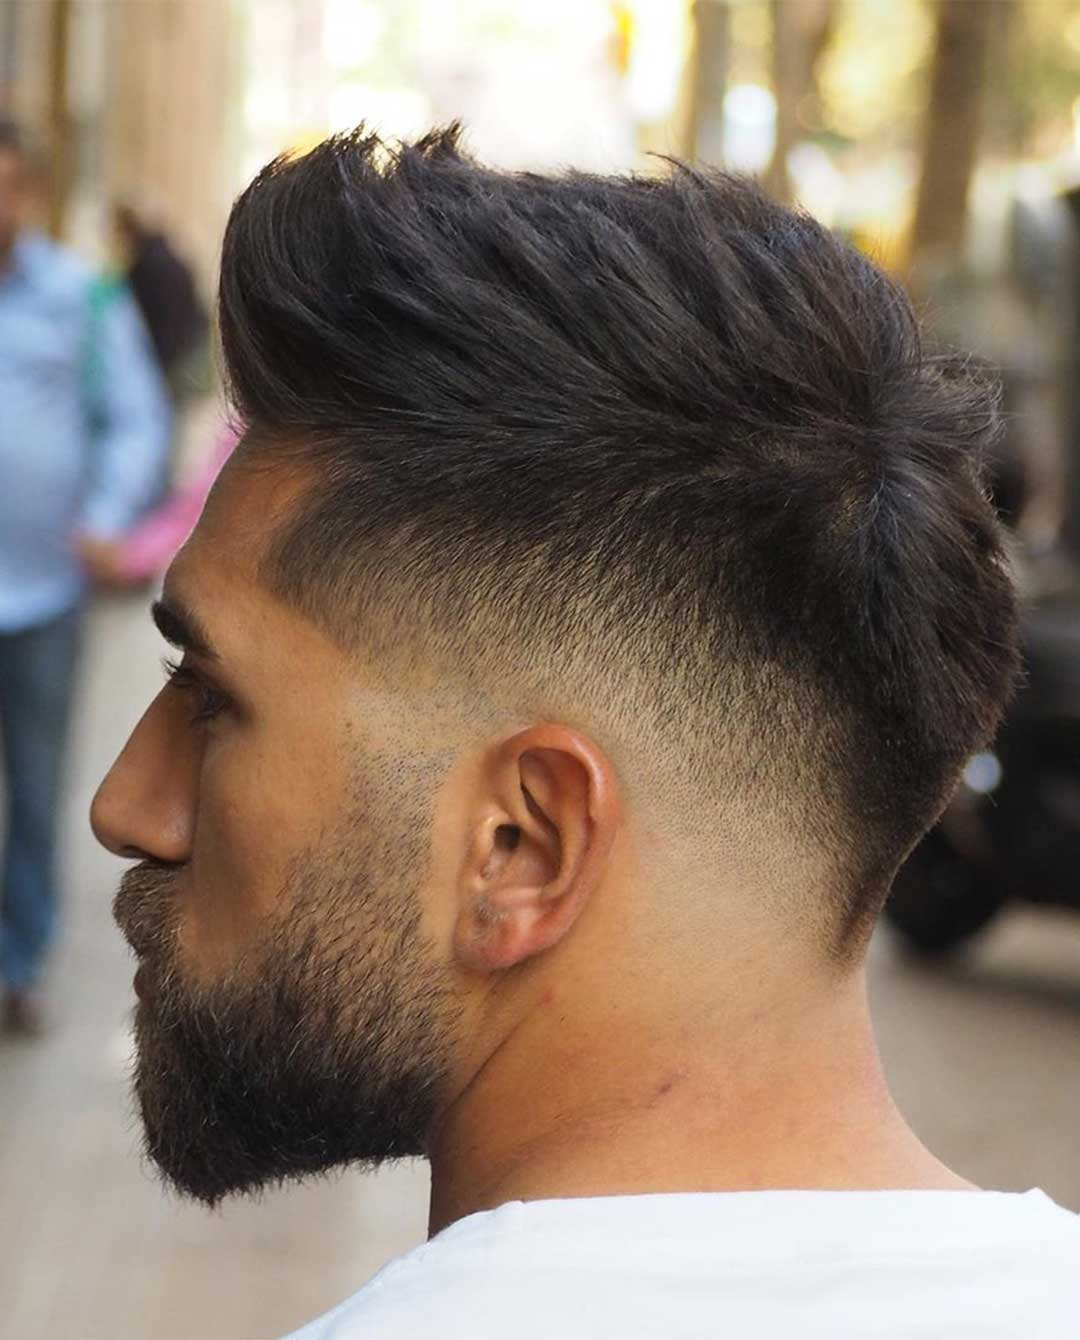 High Volume Top with Low Fade